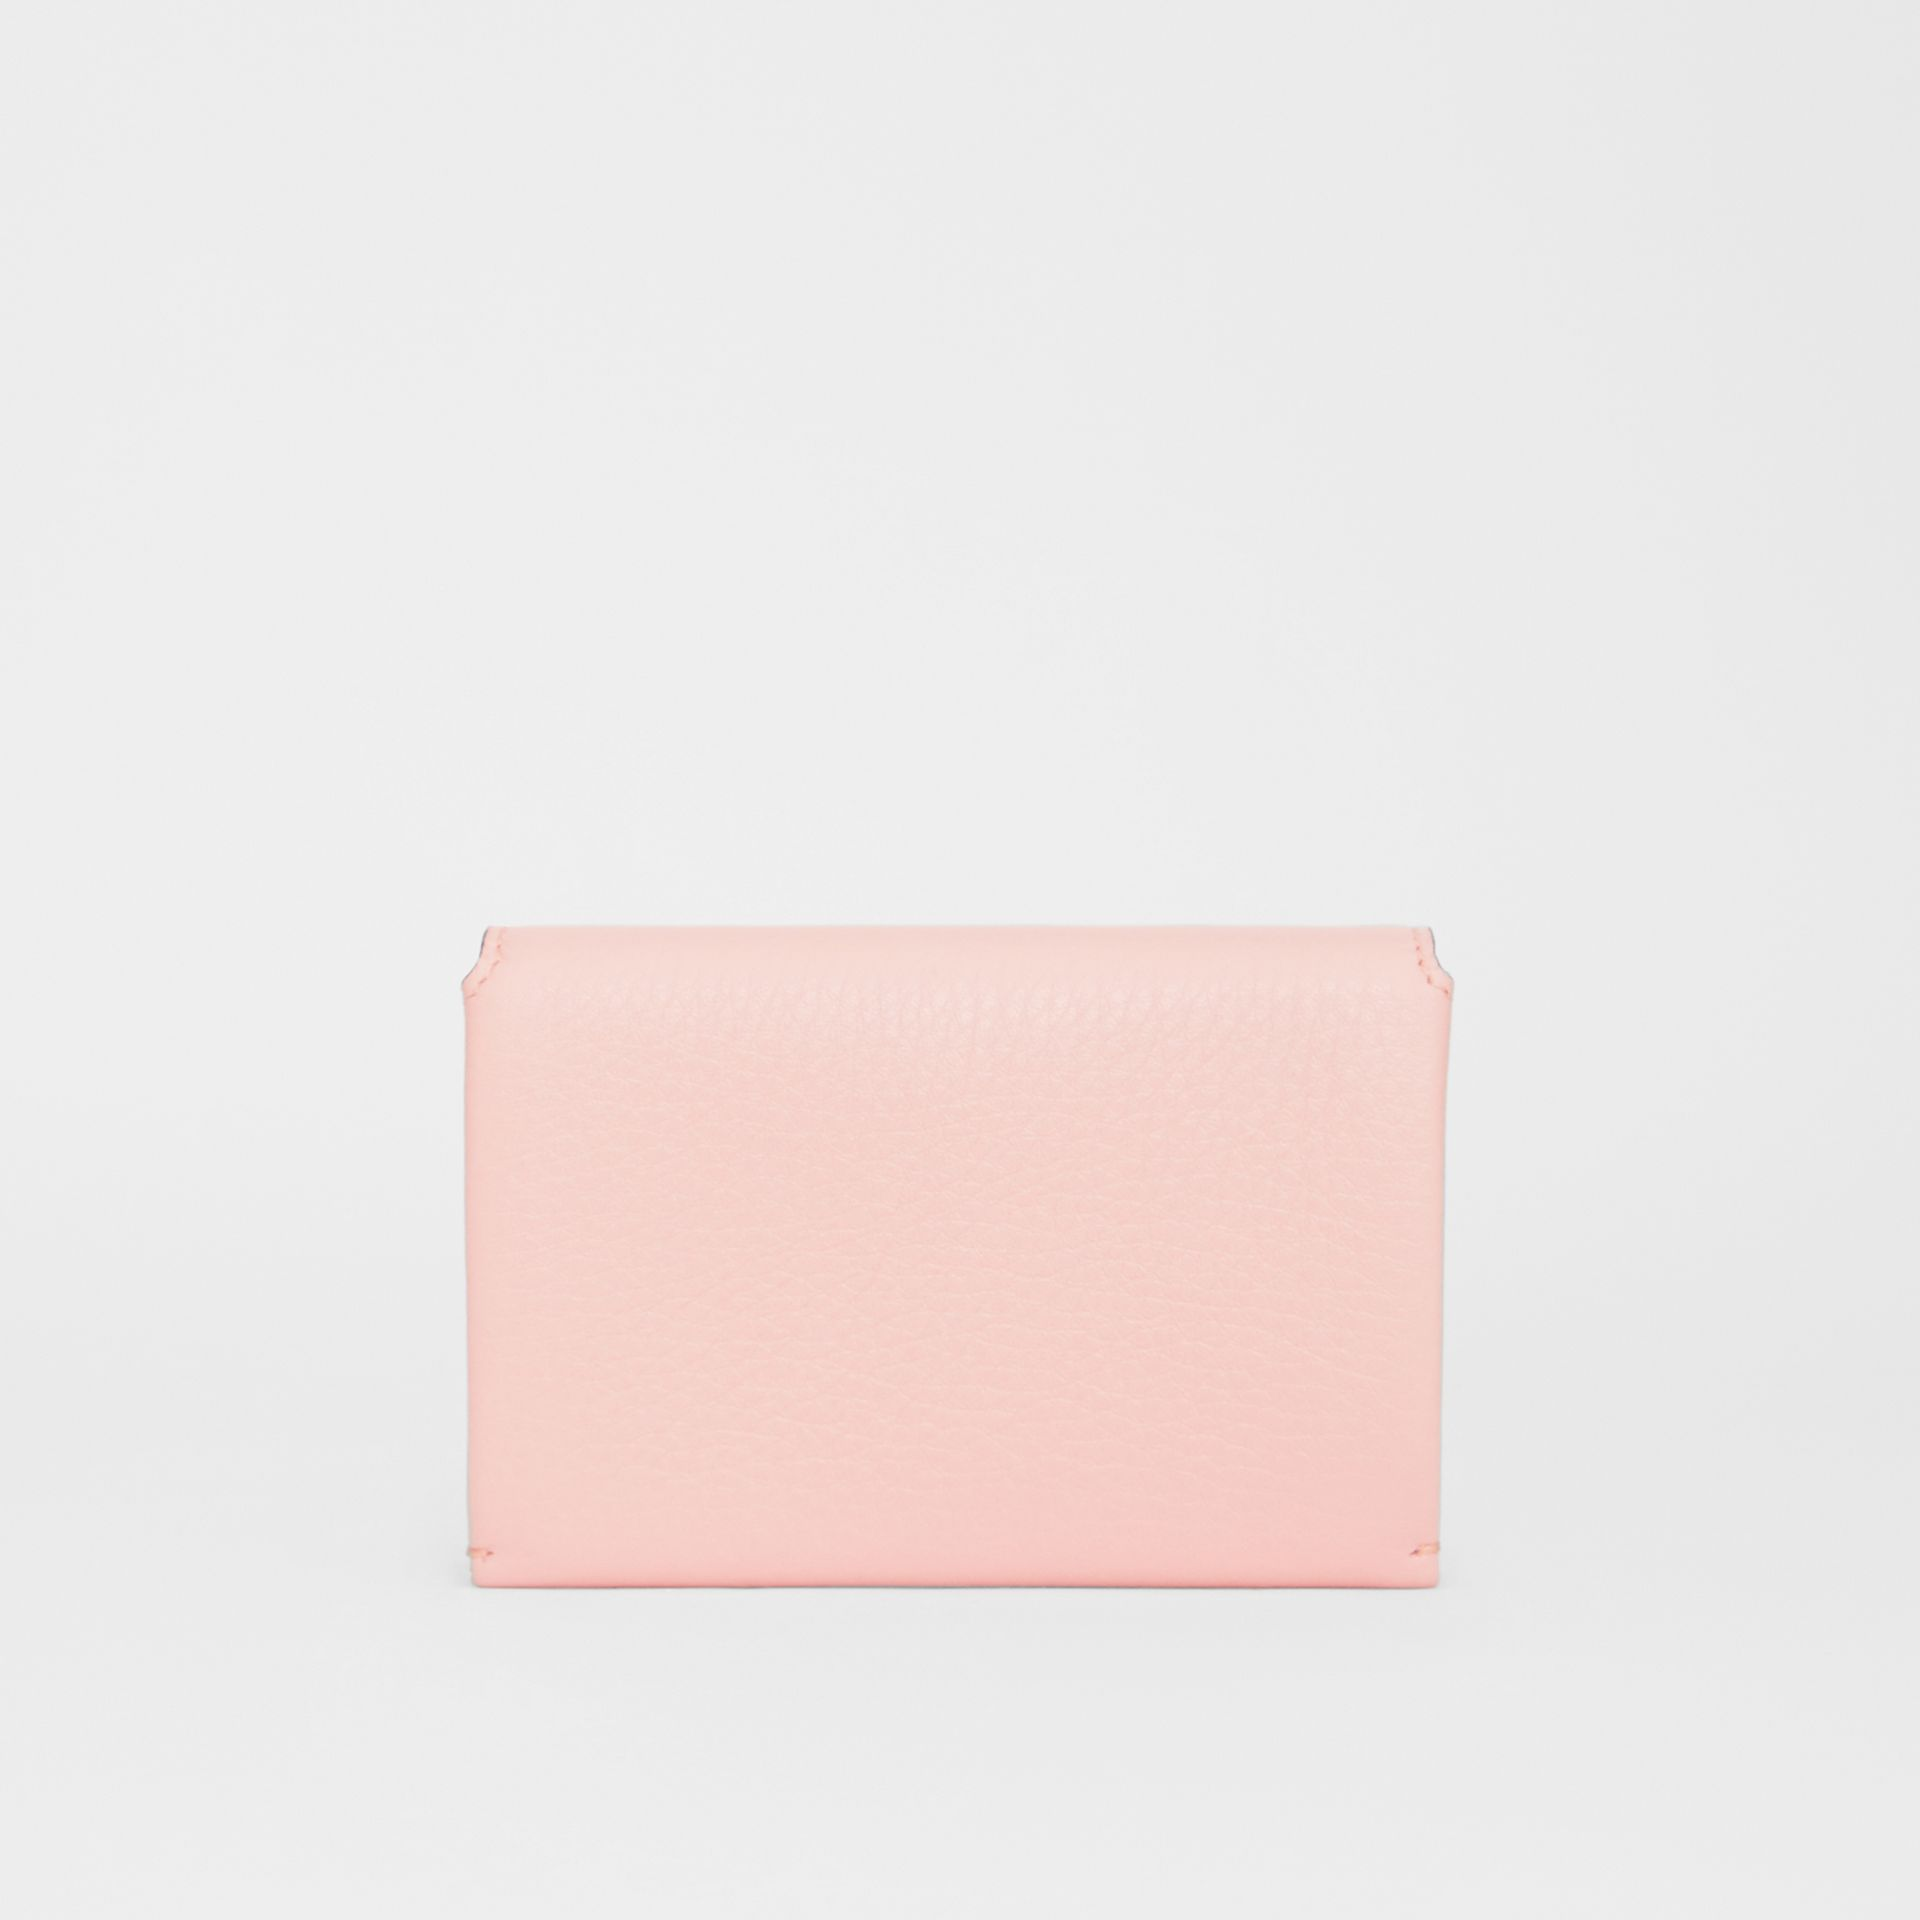 Triple Stud Leather Folding Wallet in Pale Ash Rose - Women | Burberry - gallery image 4